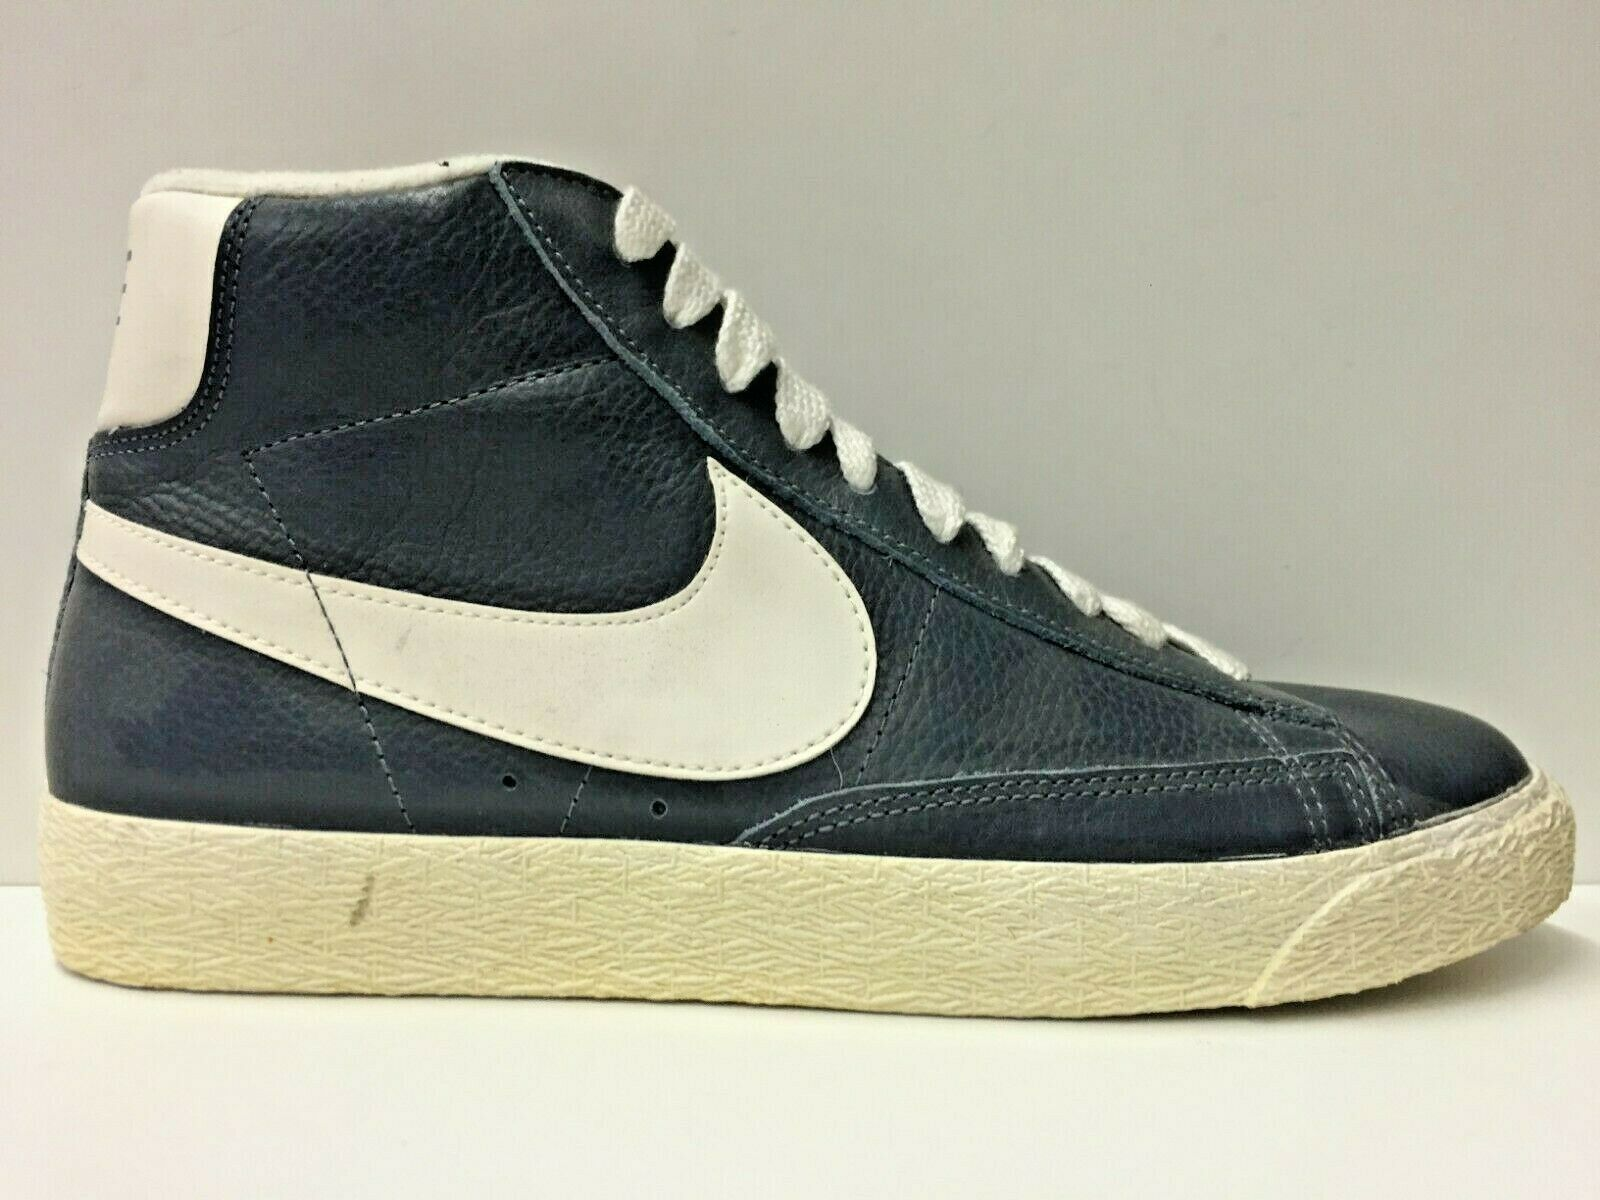 SCARPE SNEAKERS UOMO NIKE ORIGINALE BLAZER MID LEATHER VINTAGE PELLE A/I NEW